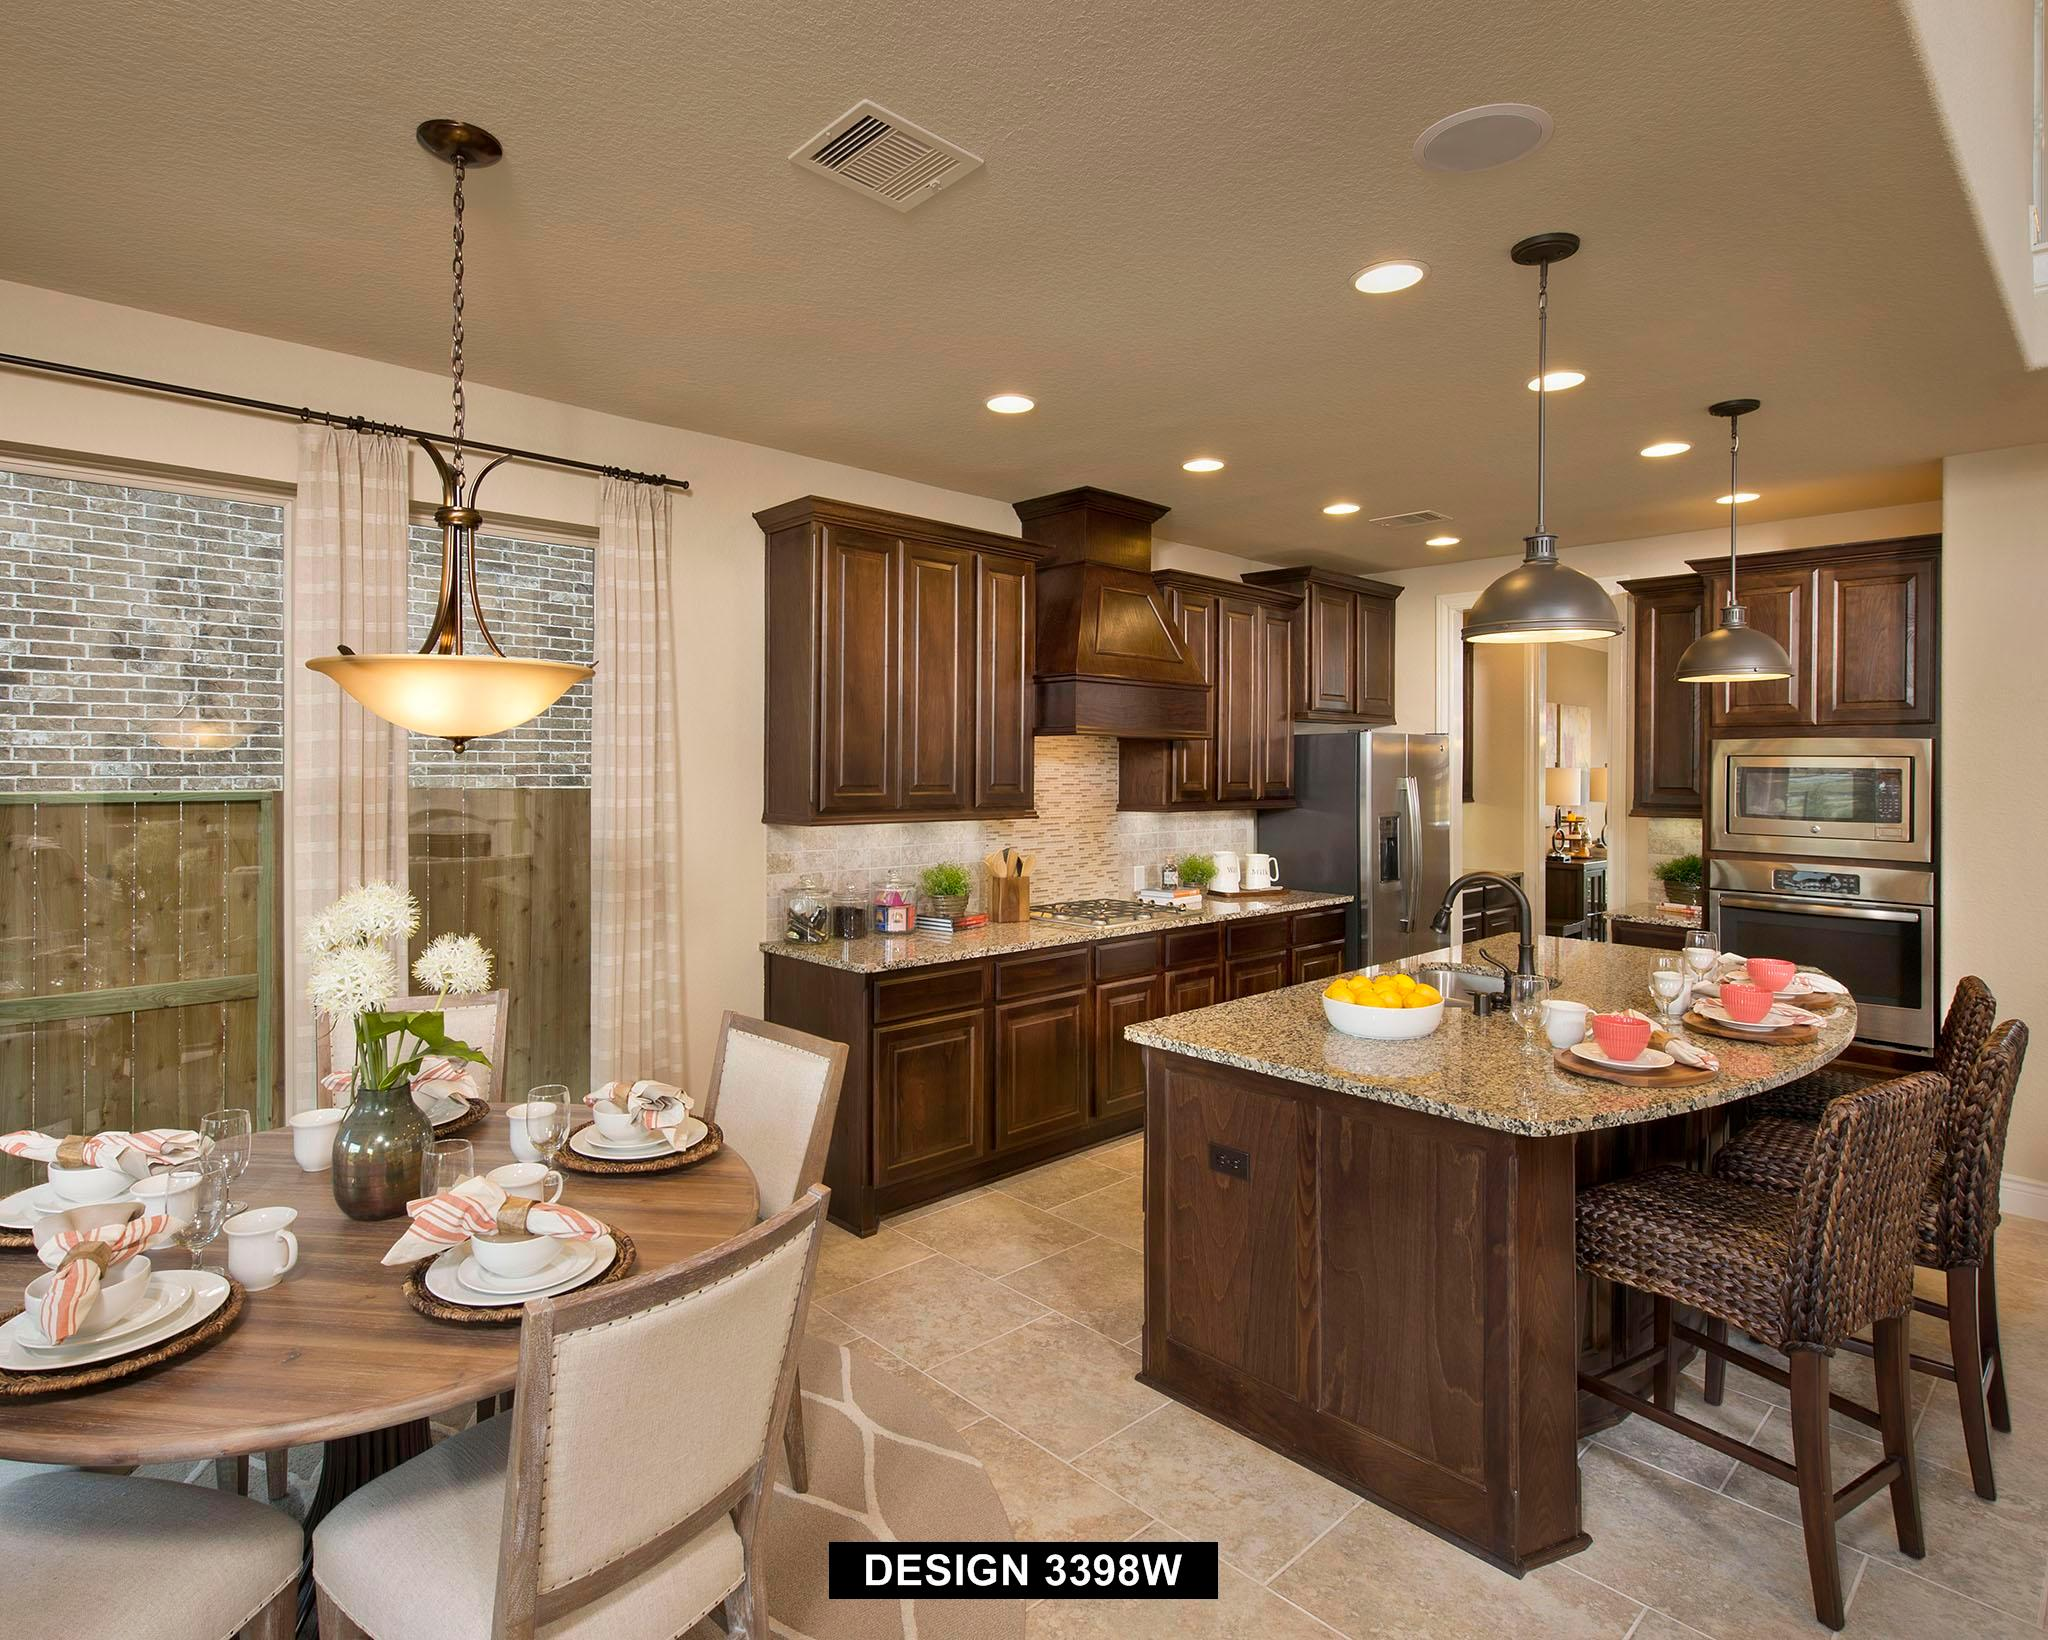 Kitchen featured in the 3398W By Perry Homes in Houston, TX